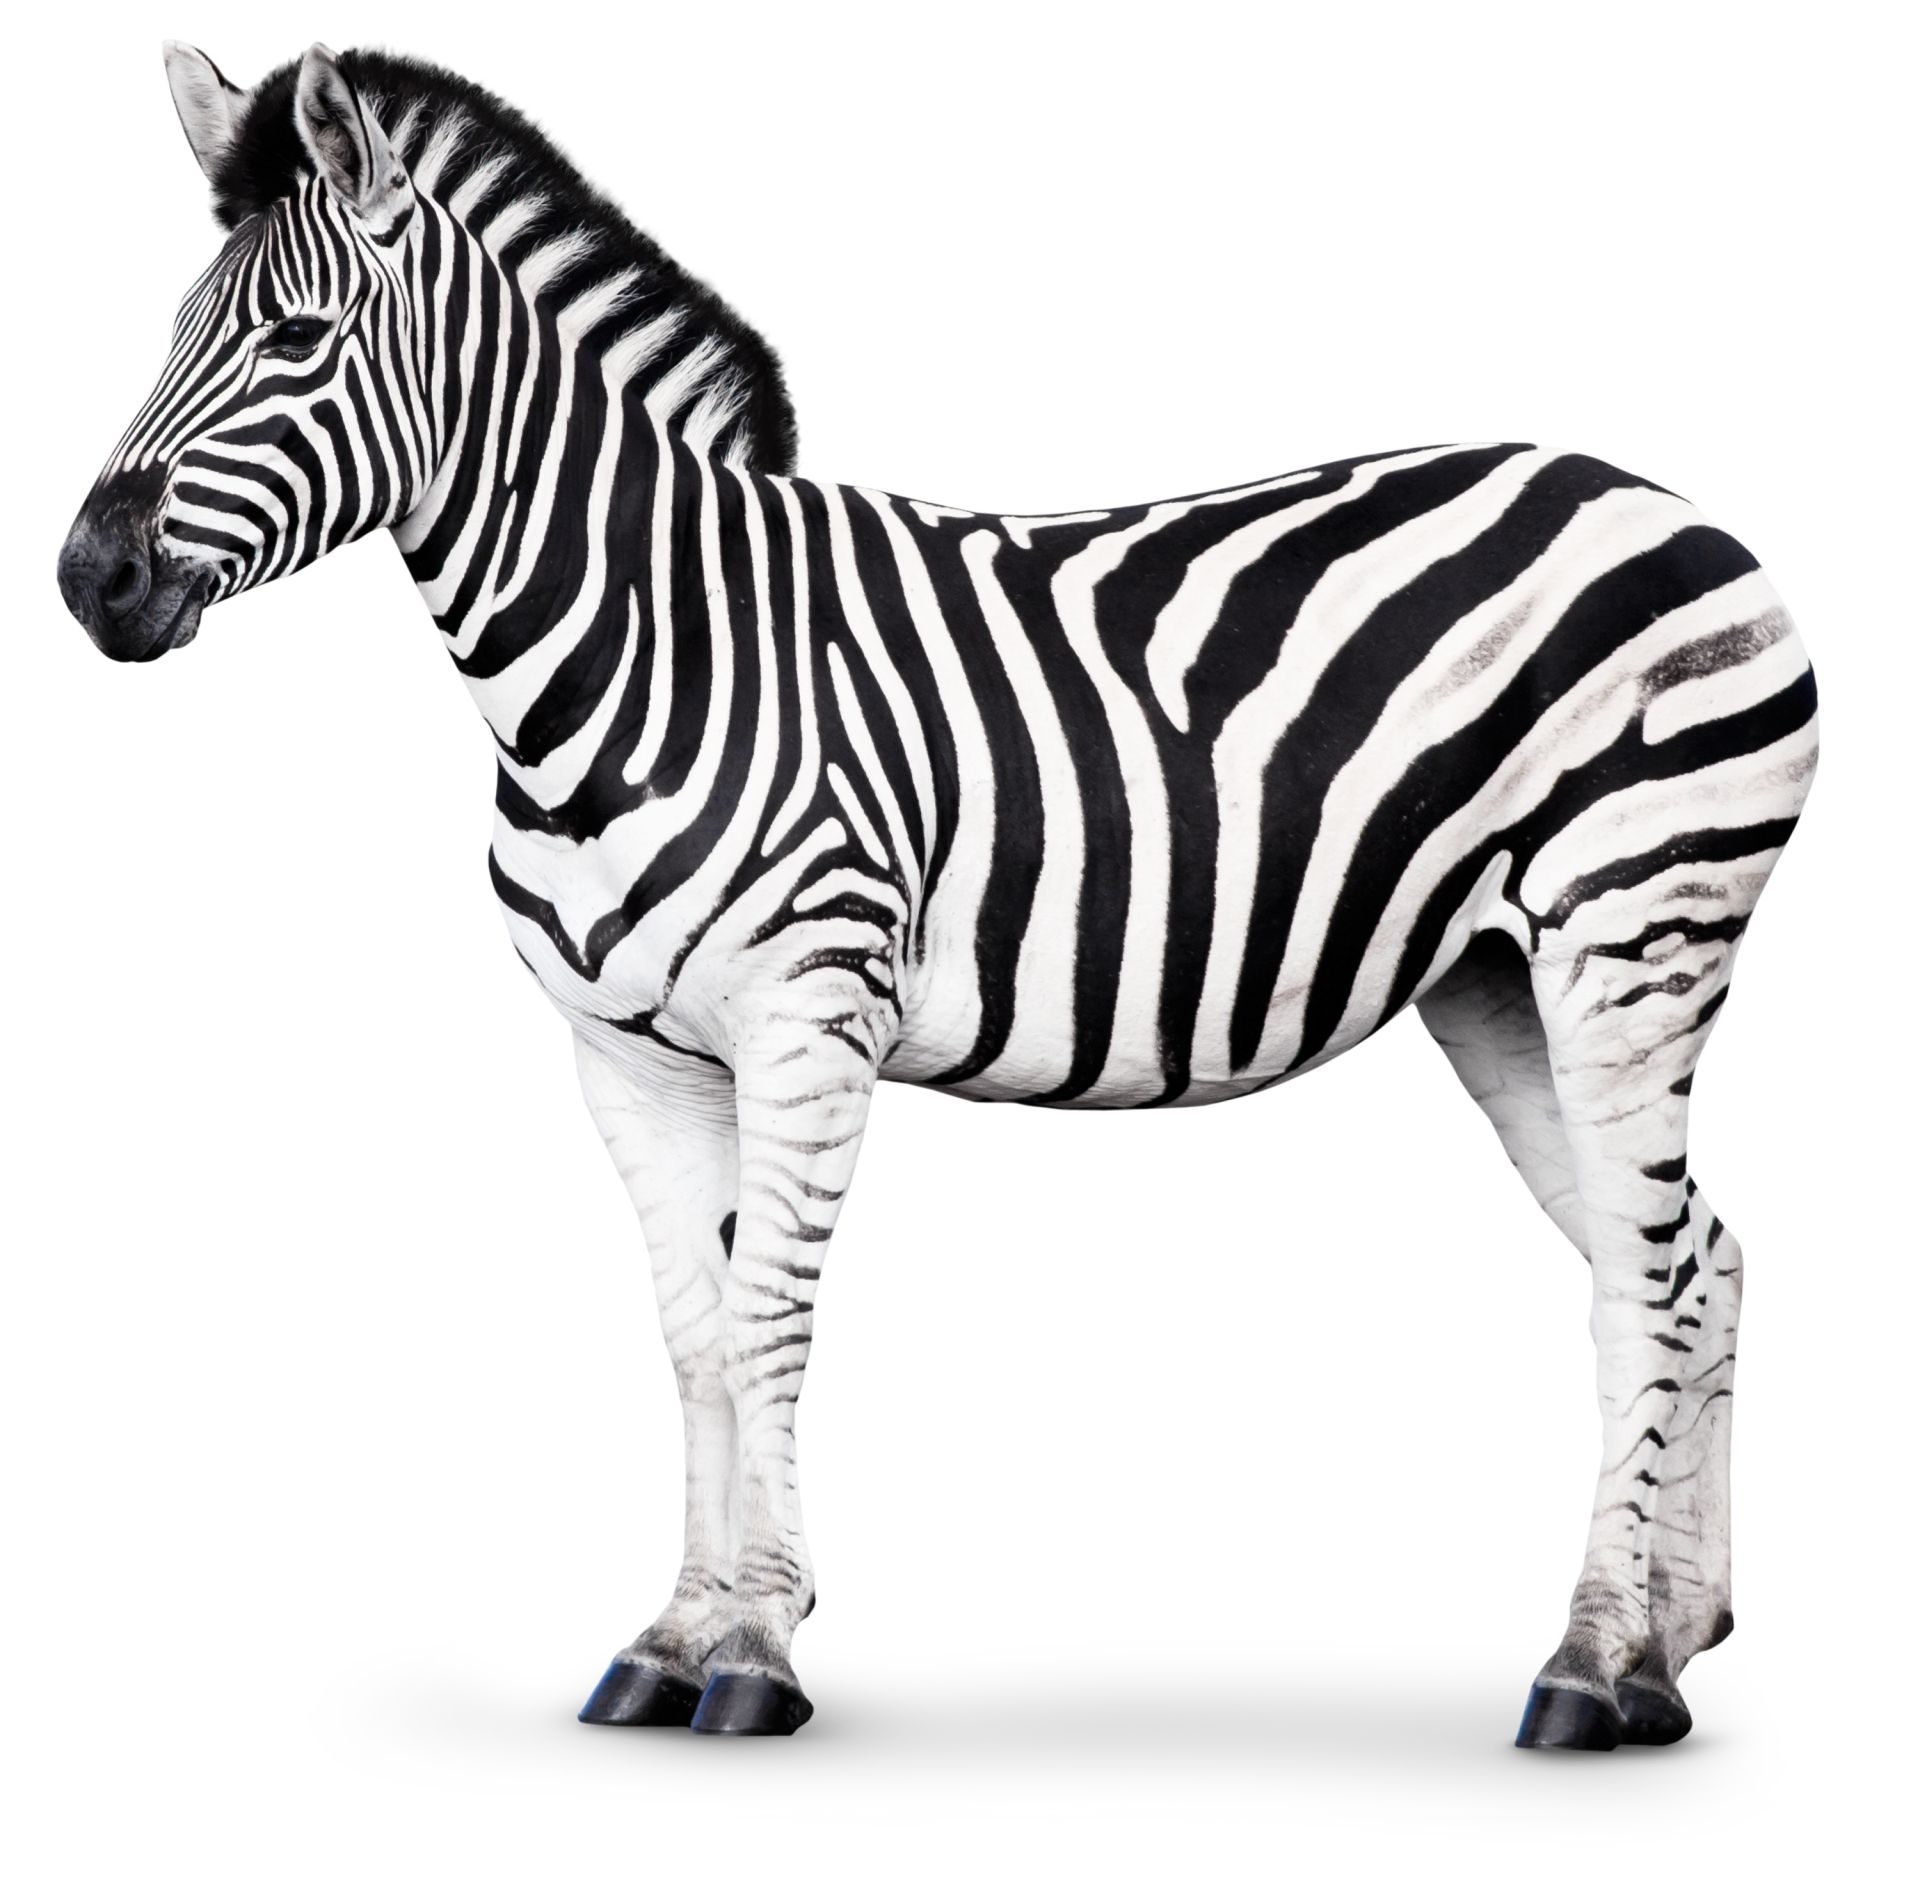 Zebra Facts For Kids | Why Are Zebras Striped? | DK Find Out